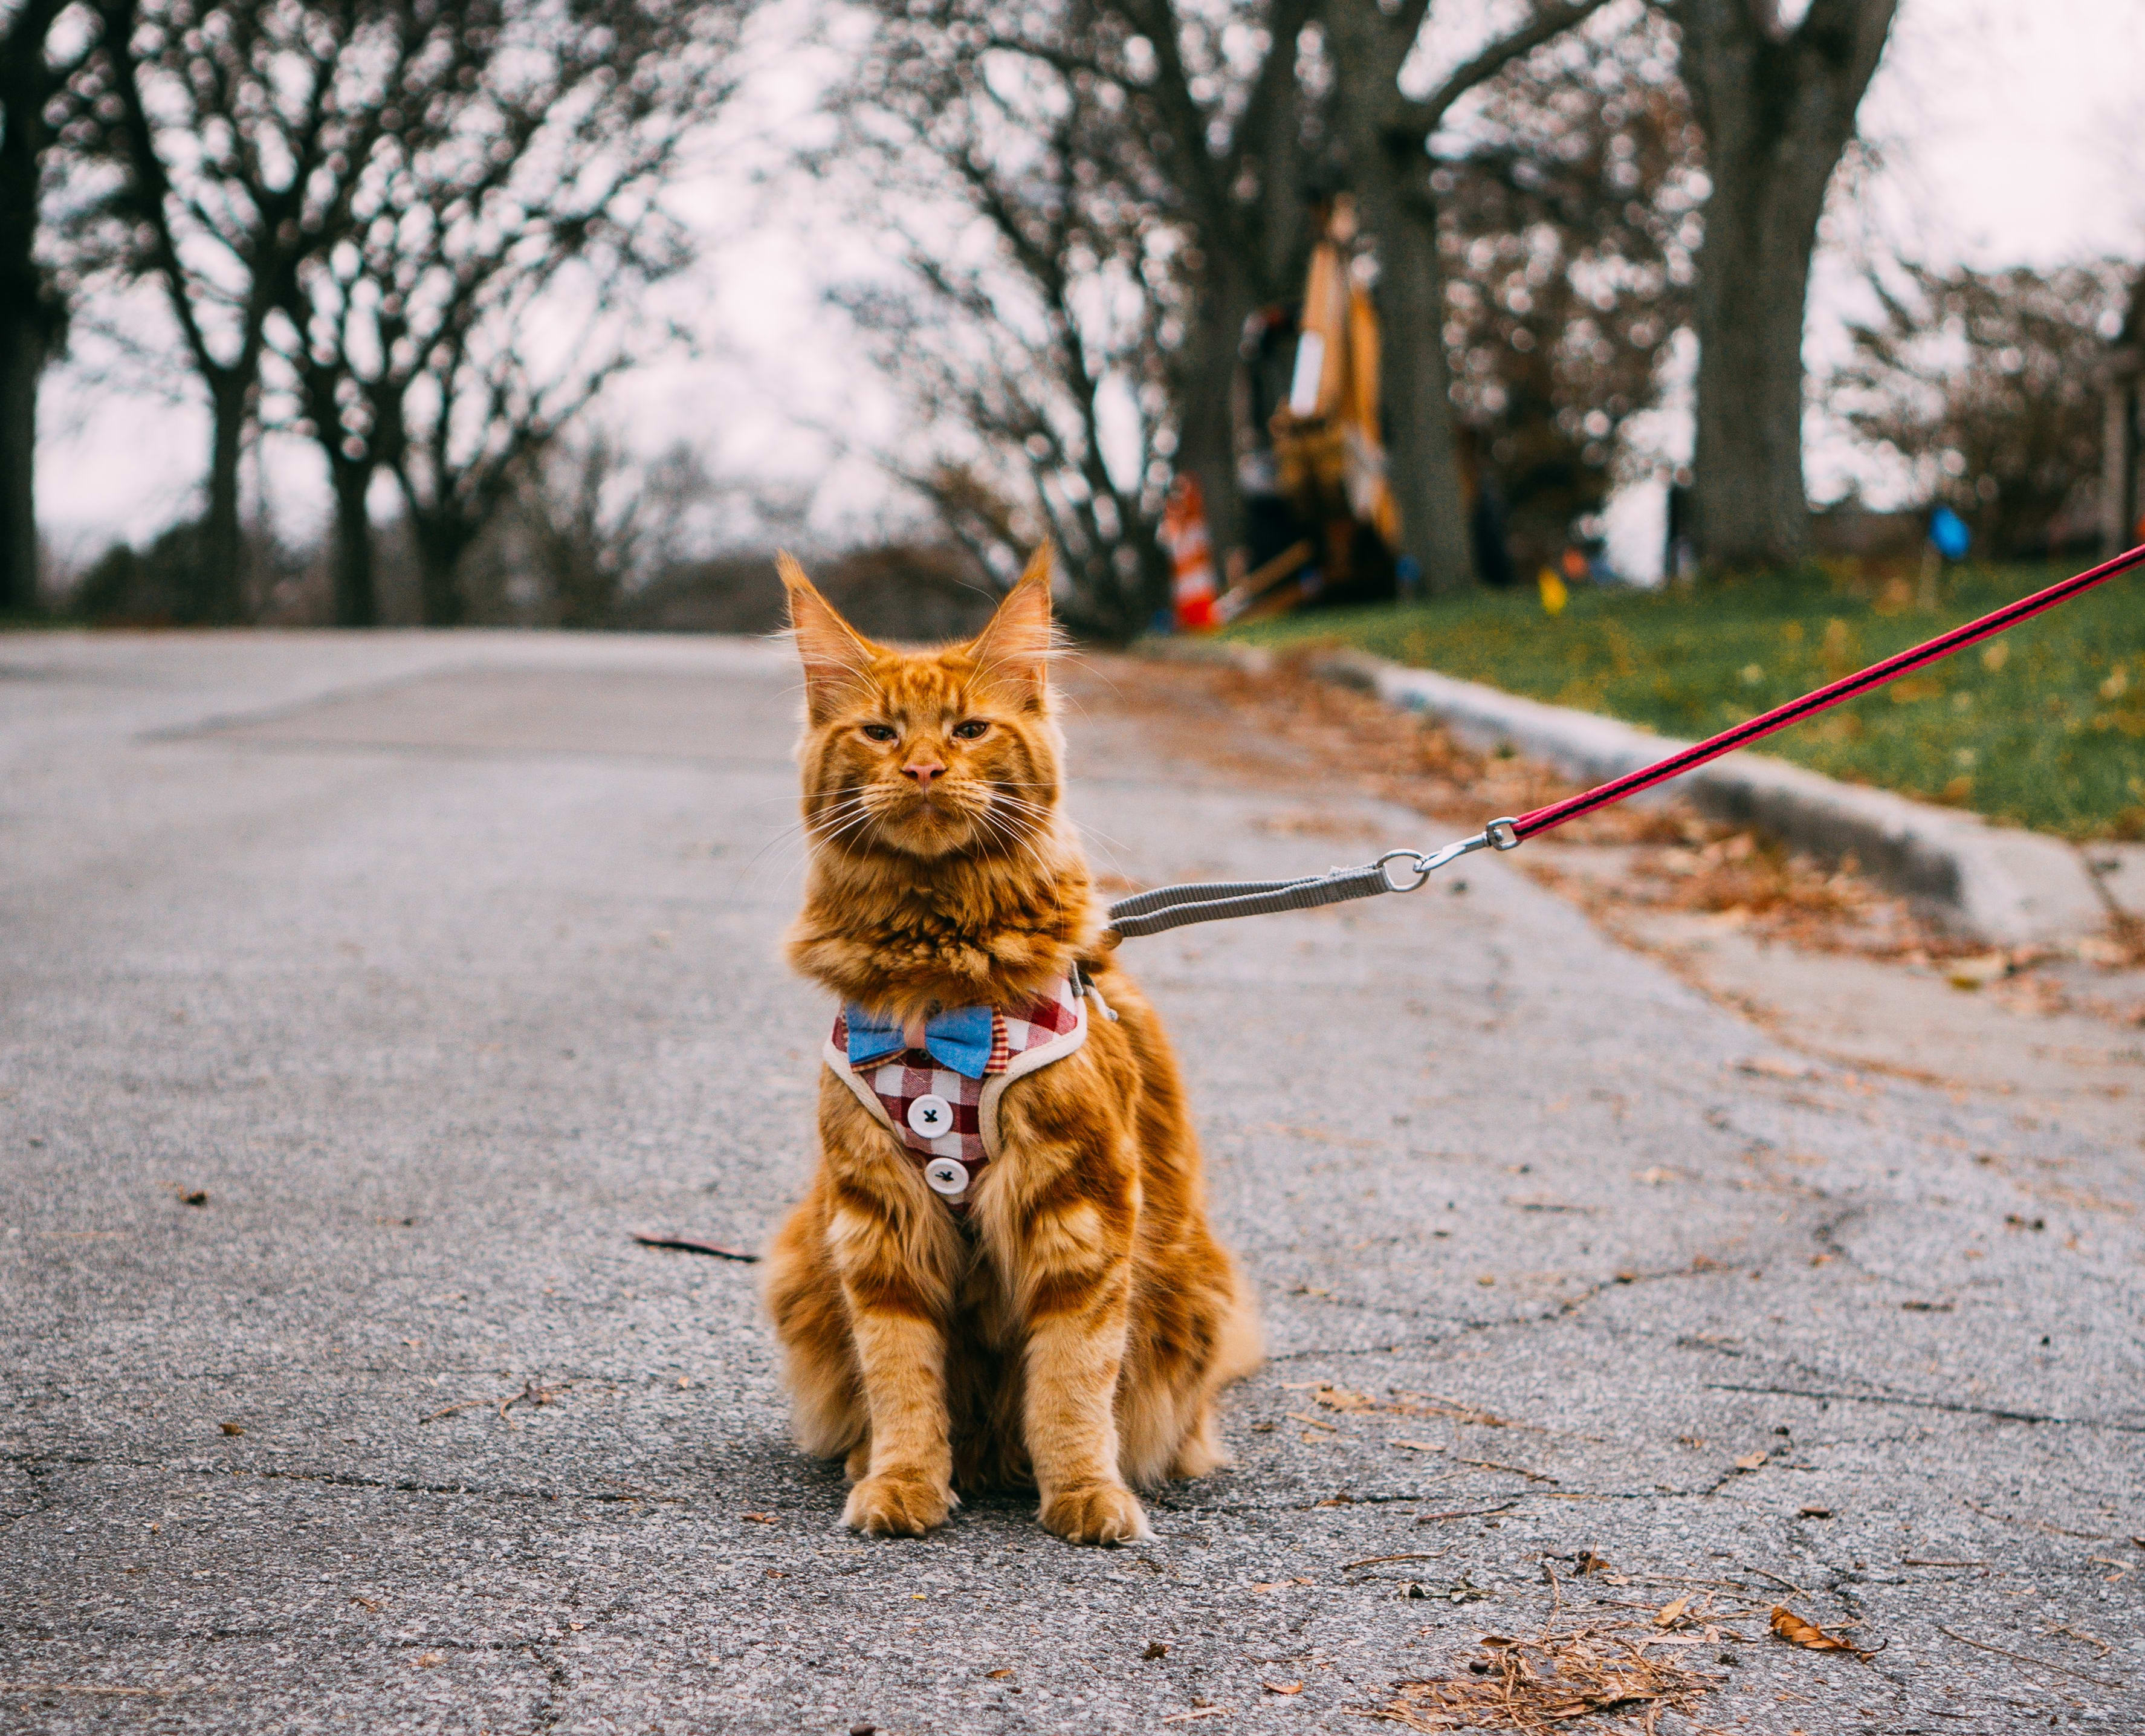 Best Cat Harness No Escape (Who's Going to Win?)